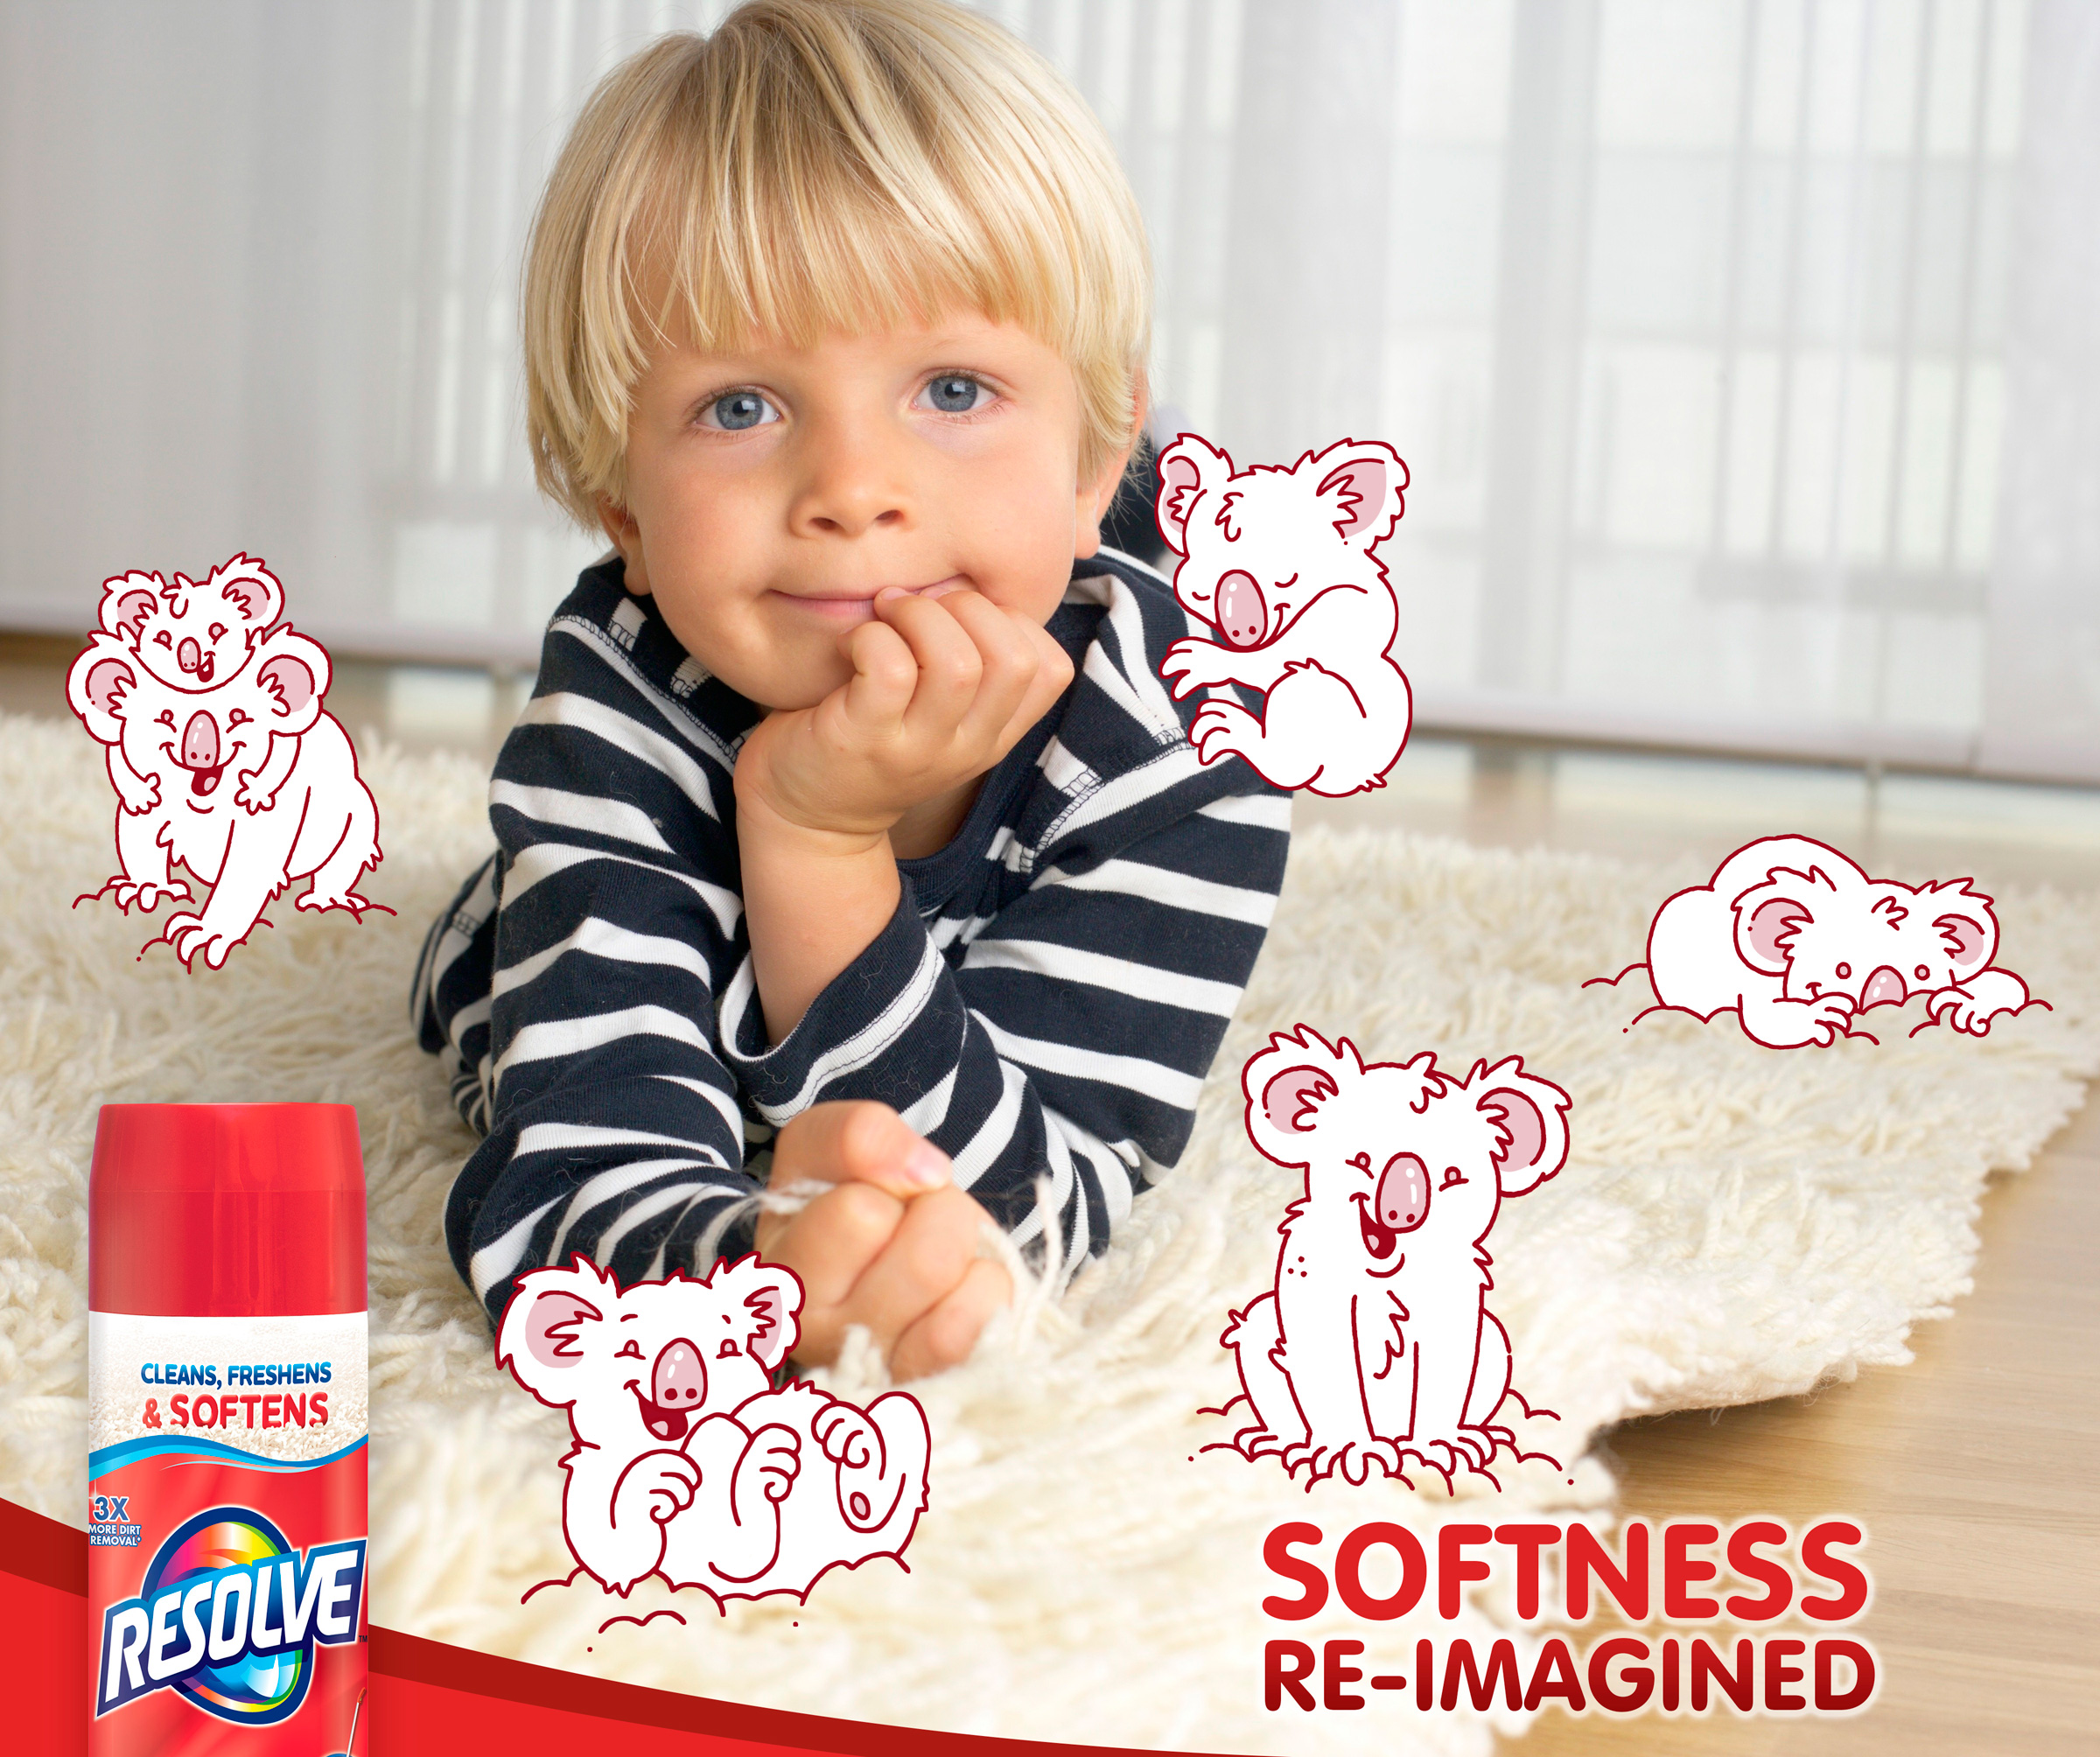 Your kids might think cuddly koalas crawl across the carpet to soften the carpet. But you know it's Resolve. The new formula cleans, freshens, and now SOFTENS your carpet.